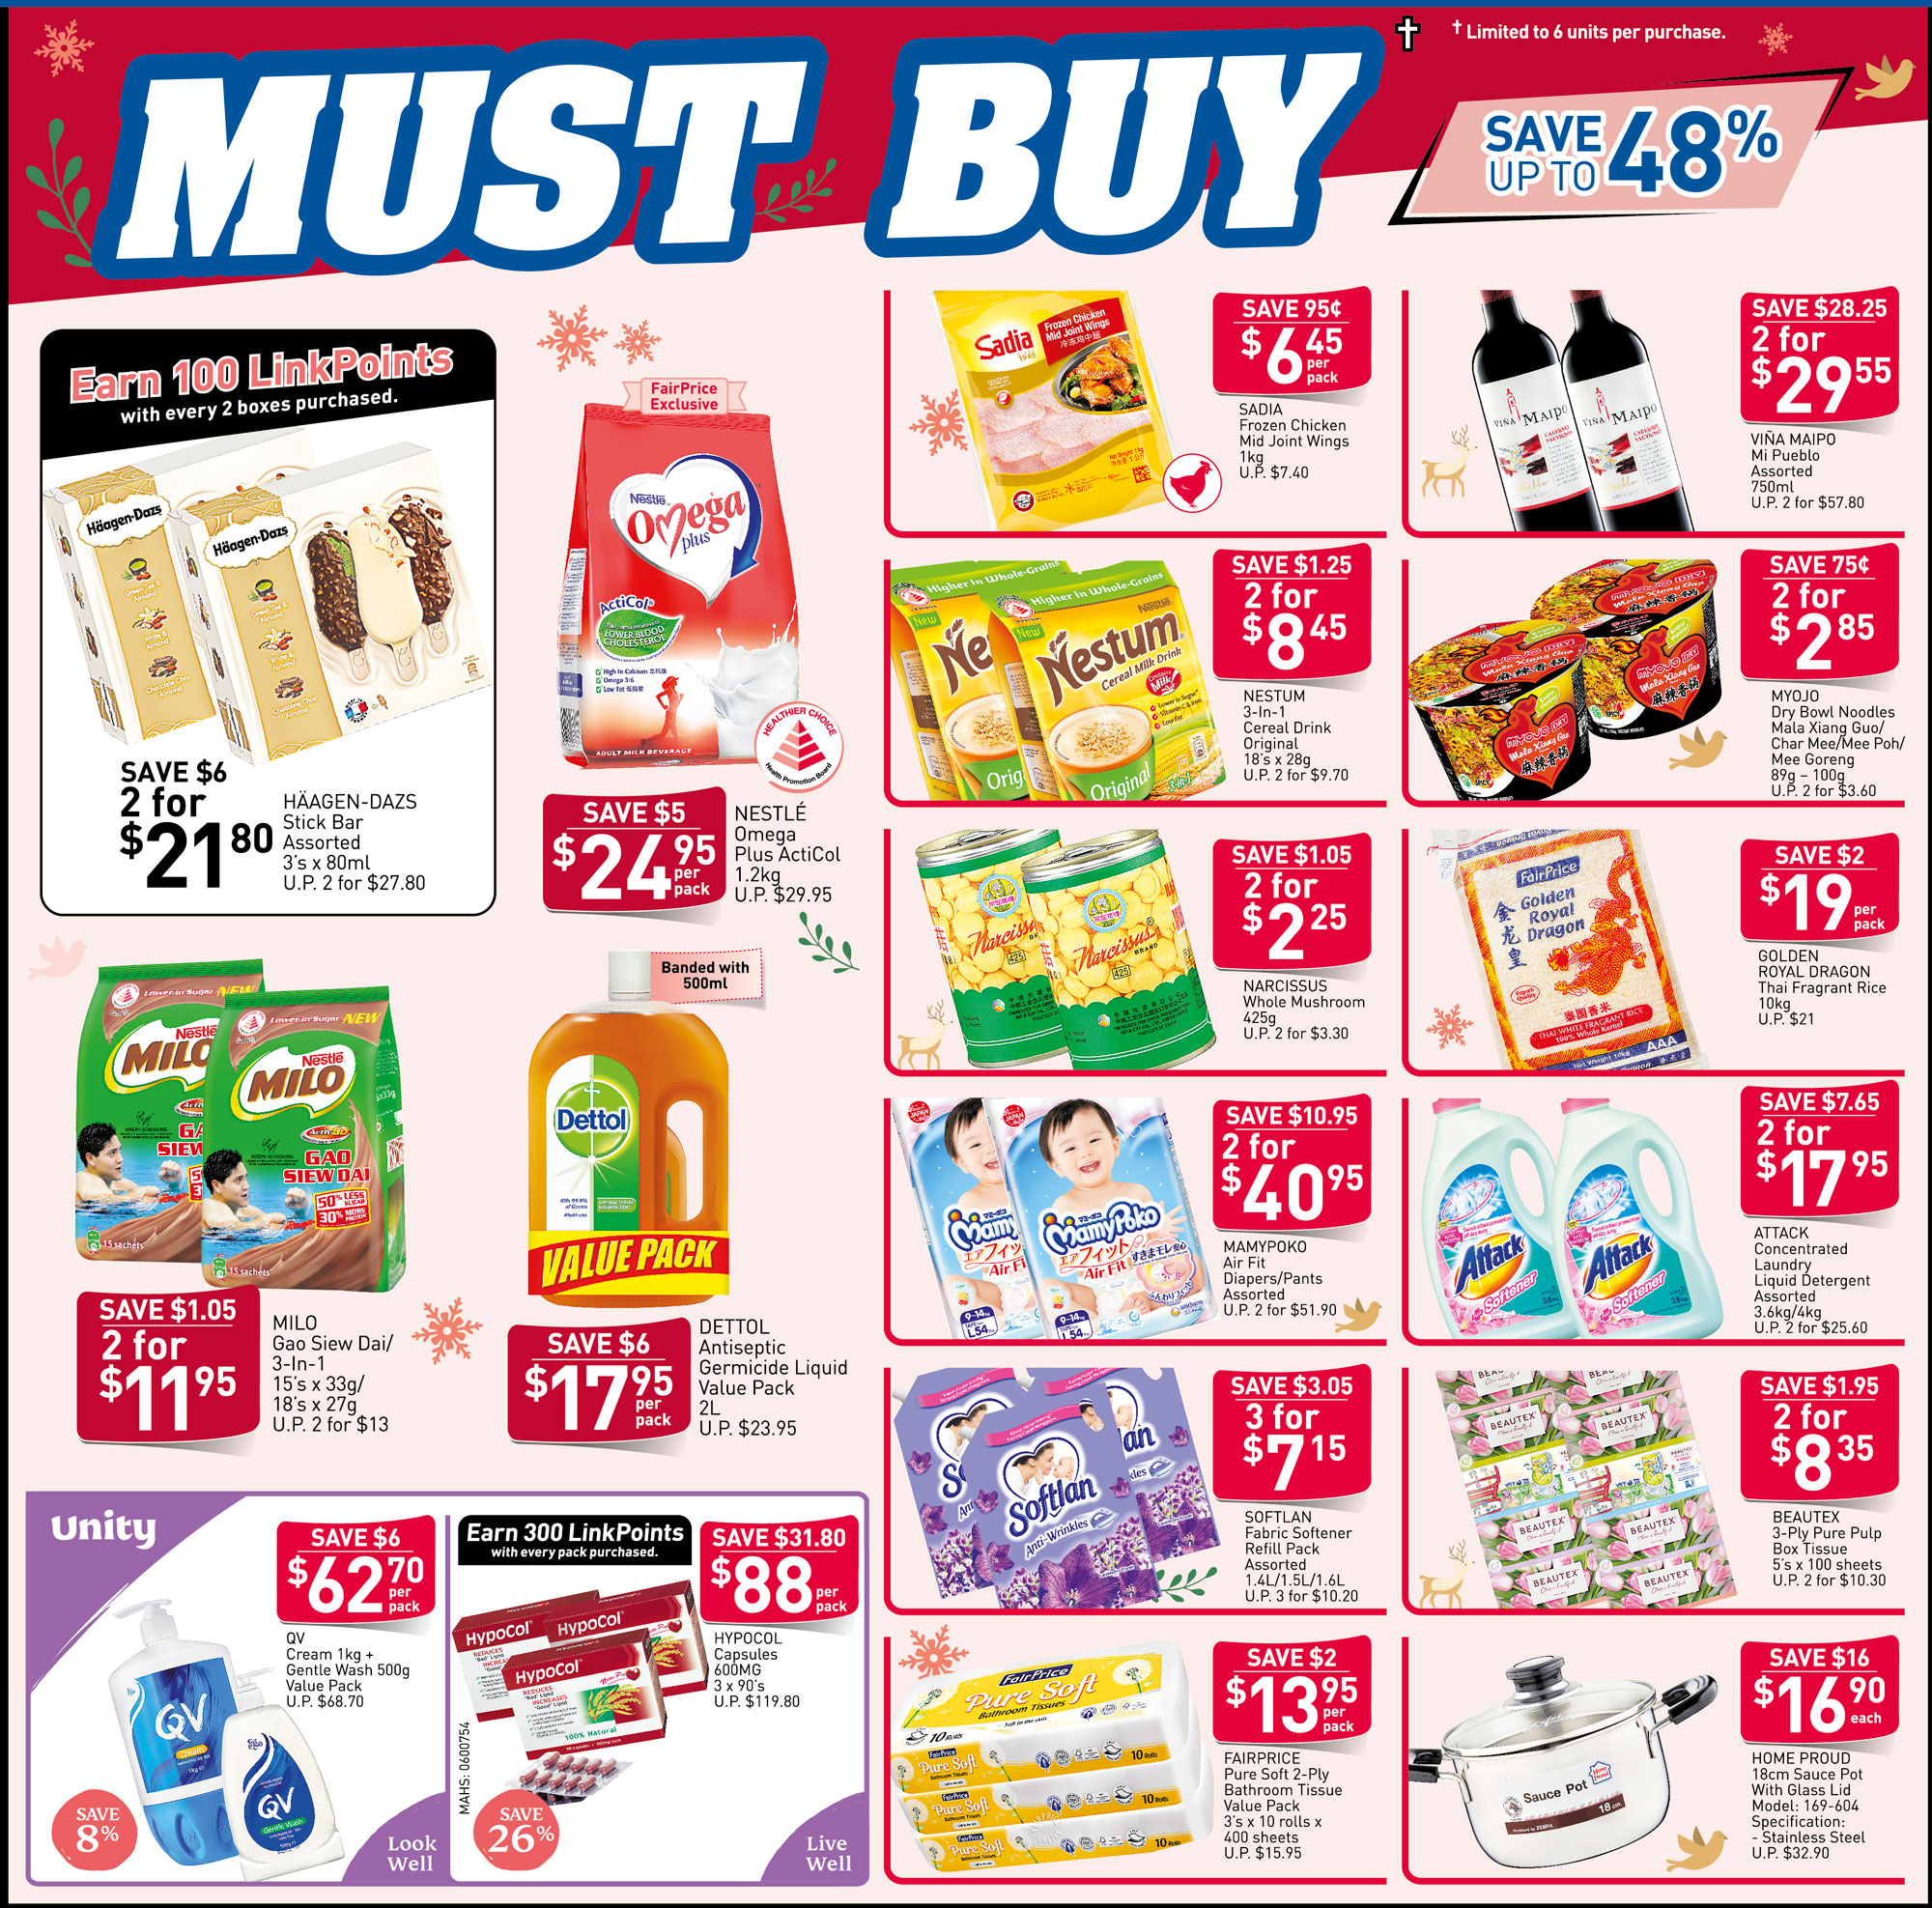 NTUC FairPrice Singapore Your Weekly Saver Promotions 7-13 Nov 2019   Why Not Deals 1 & Promotions